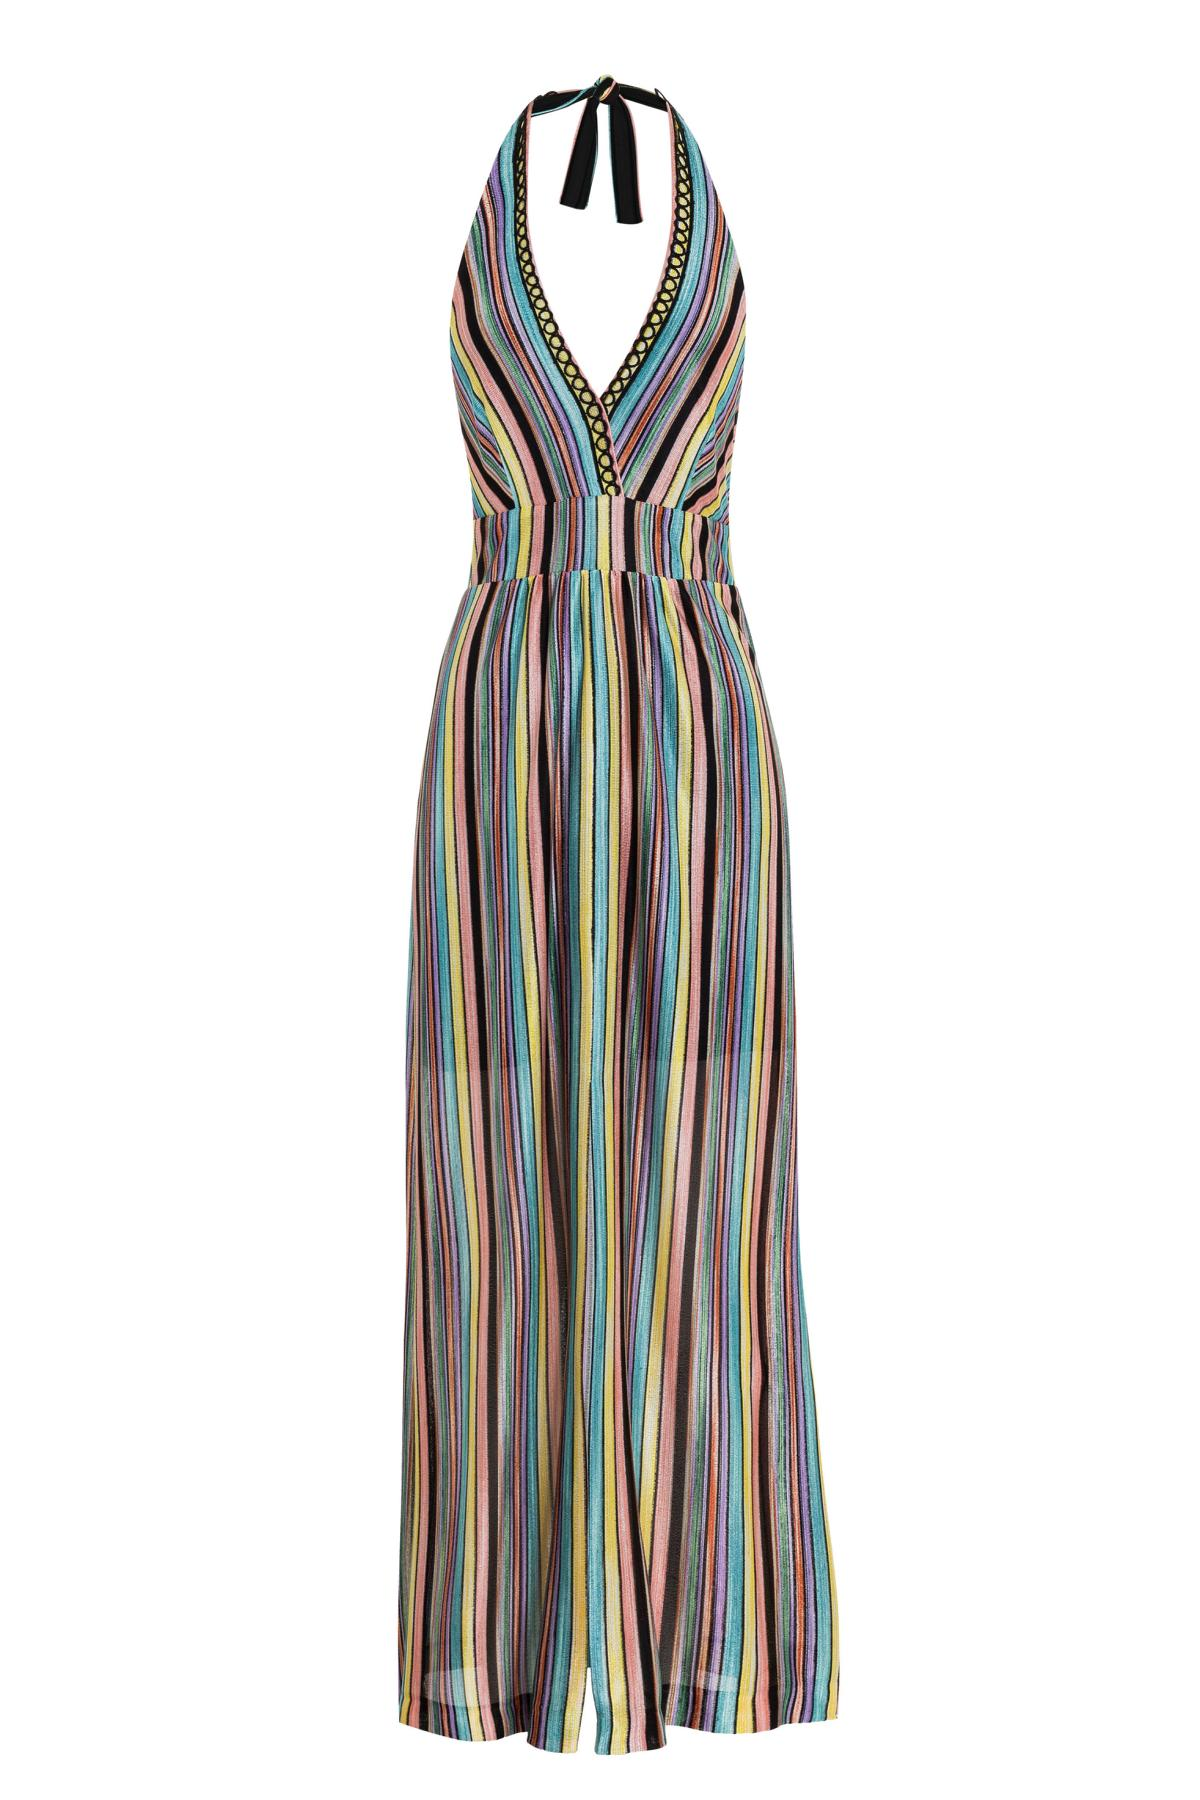 Ana Alcazar Maxi Dress Skepla